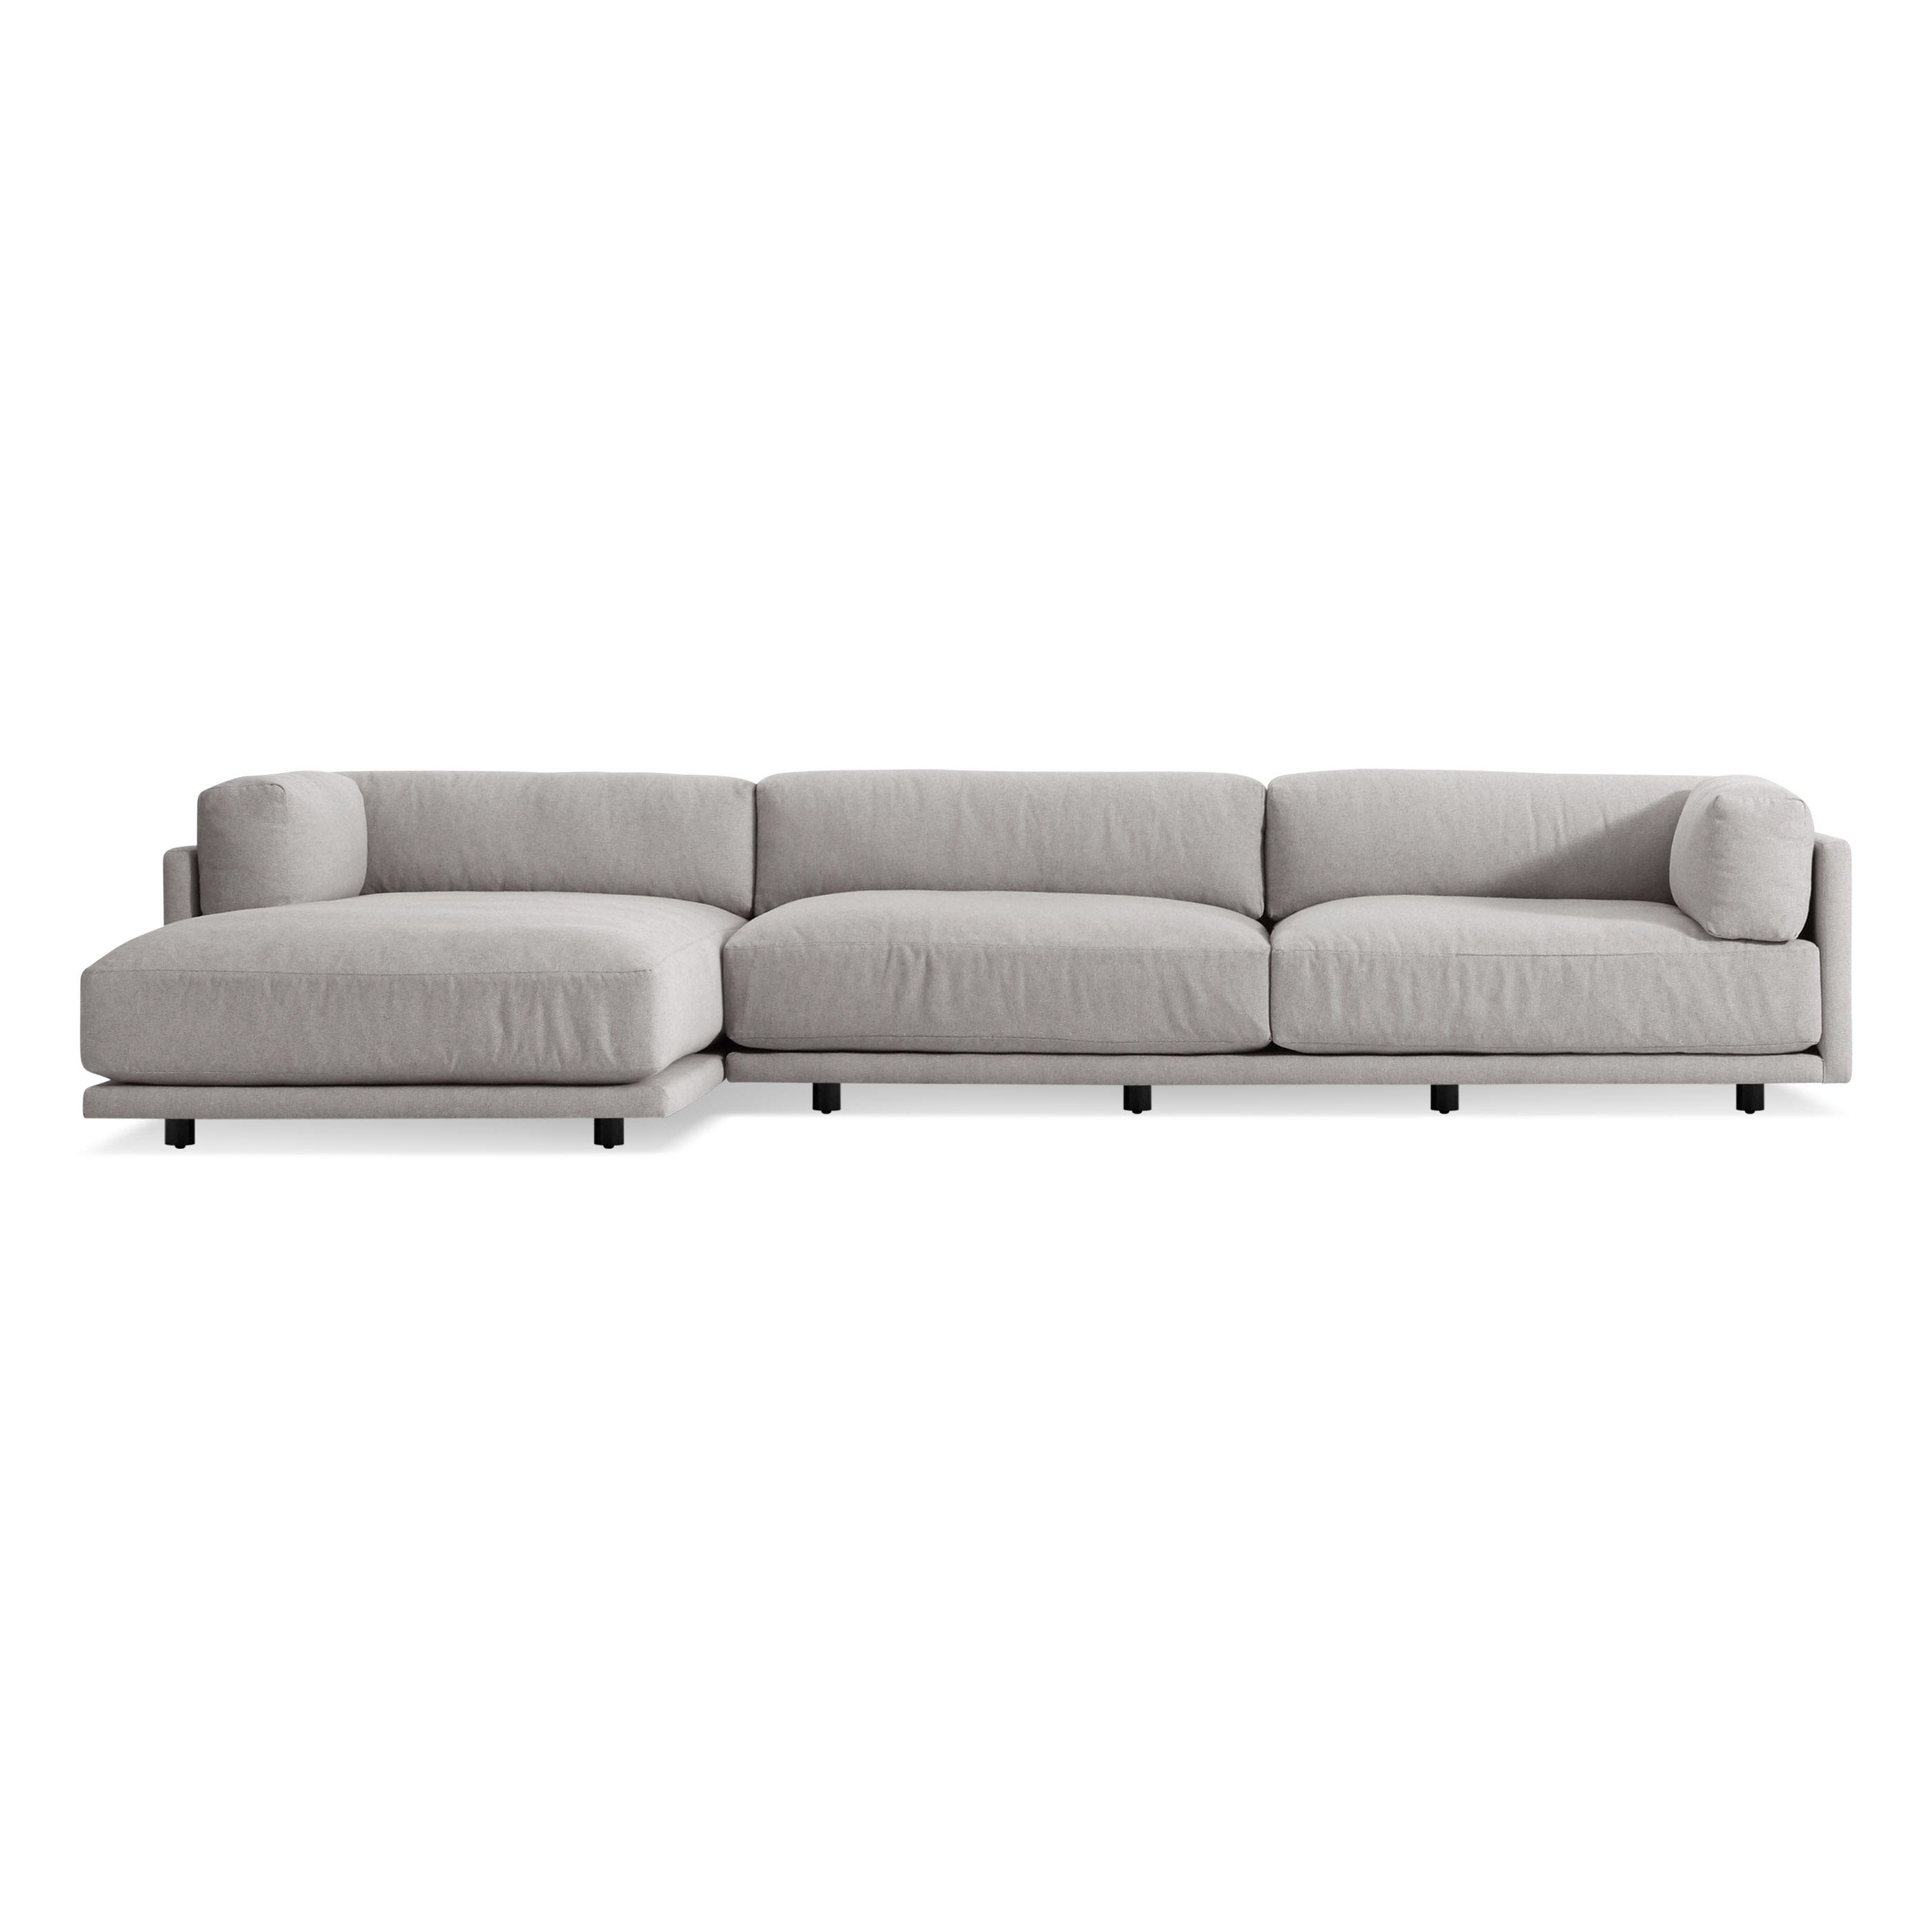 imports piece arm arms pier sectional zoom alton with right in ecru chaise